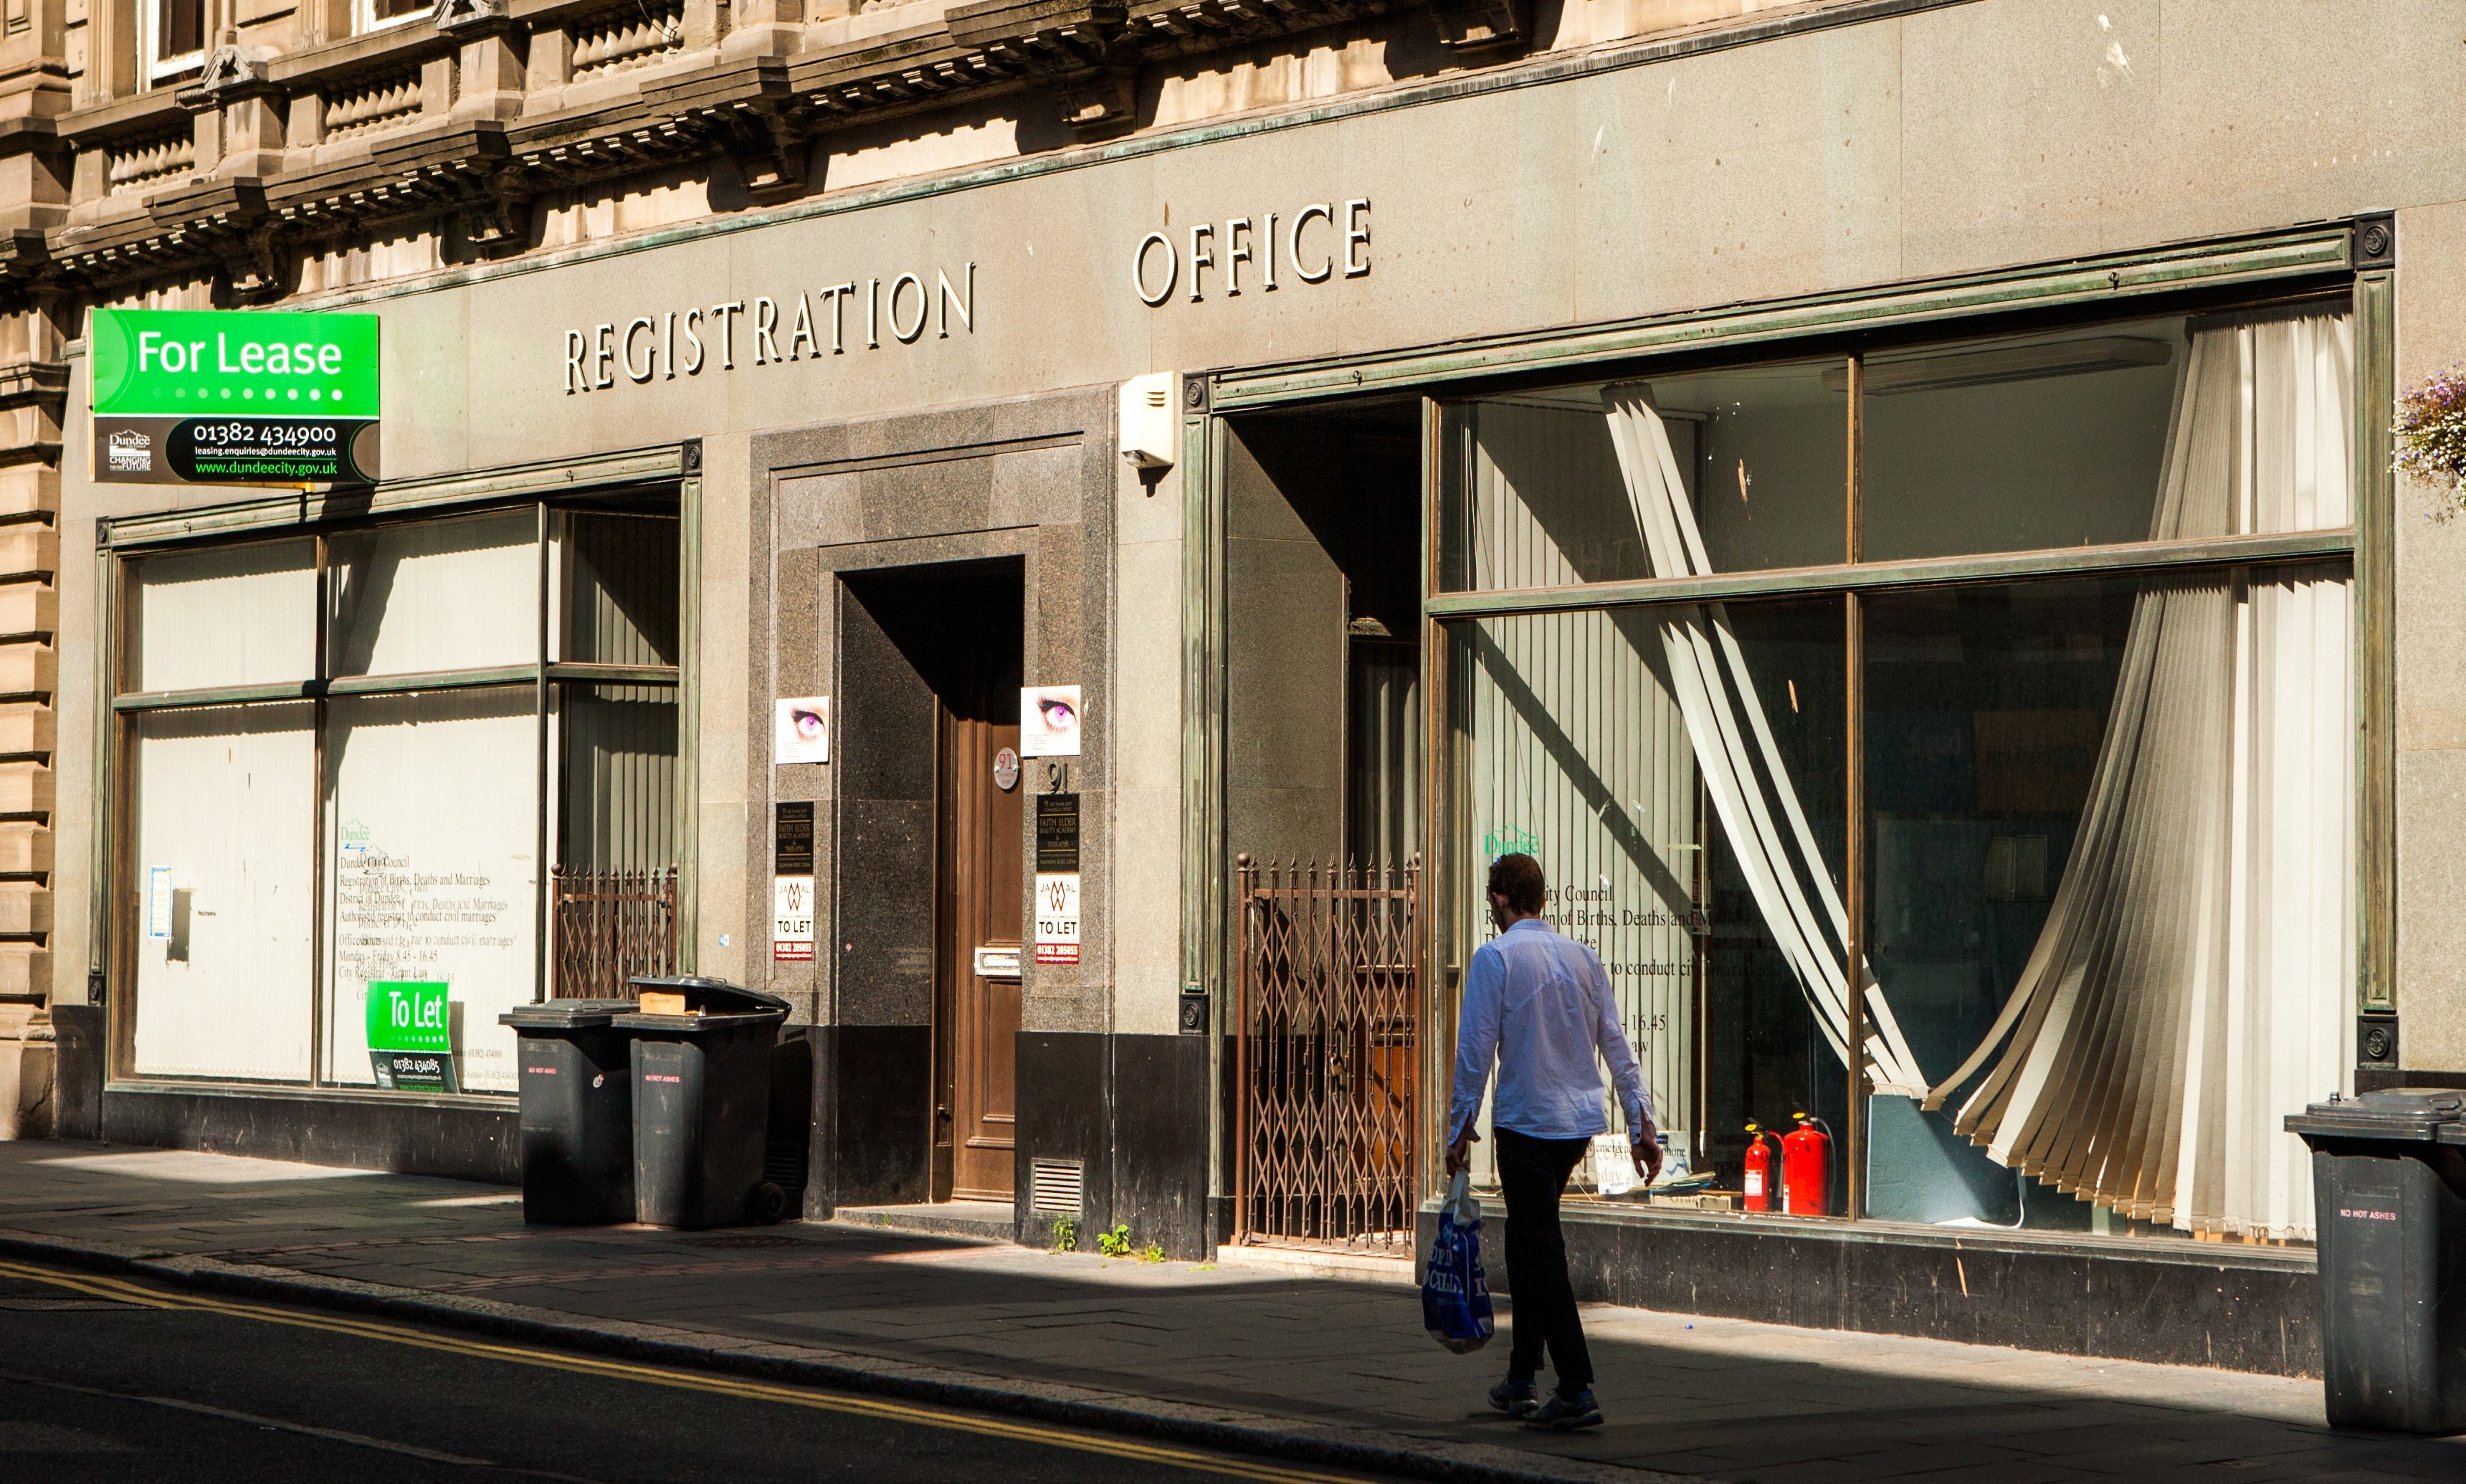 The former Registration Office had been available for lease since 2015.